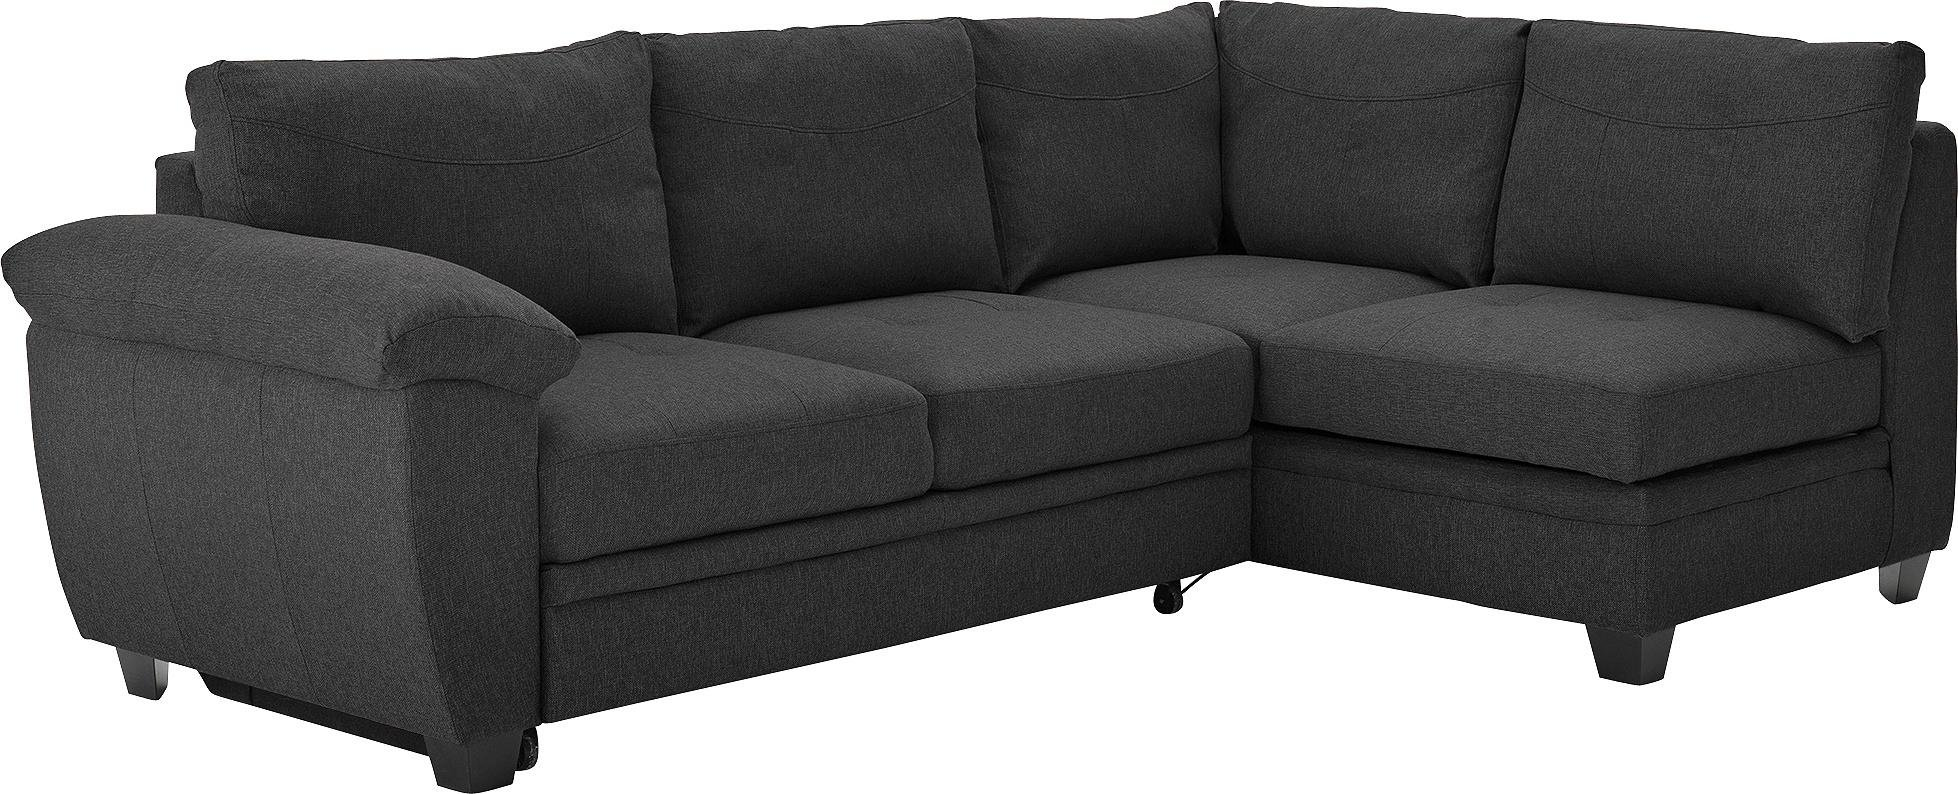 Argos Home Fernando Fabric Right Corner Sofa Bed - Charcoal